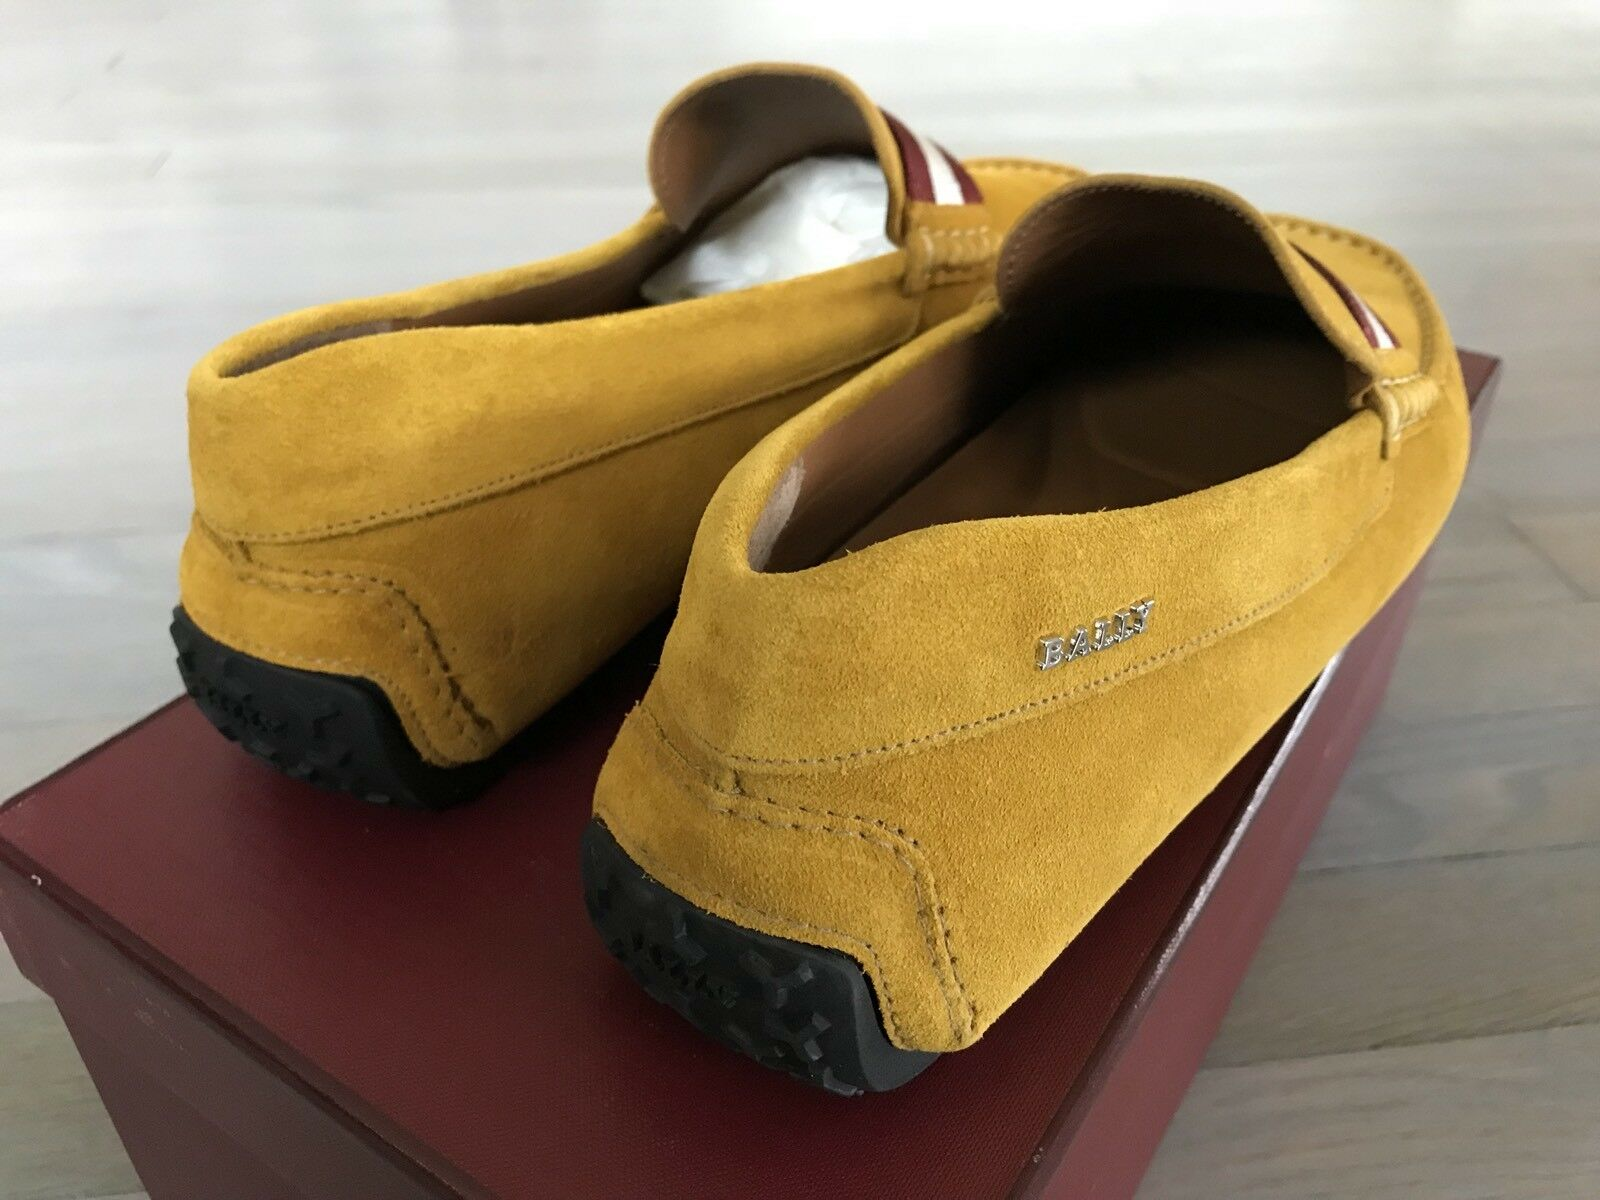 550  Bally Pearce Pearce Pearce Mustard Suede Driver Size US 12 Made in Italy bfd09f